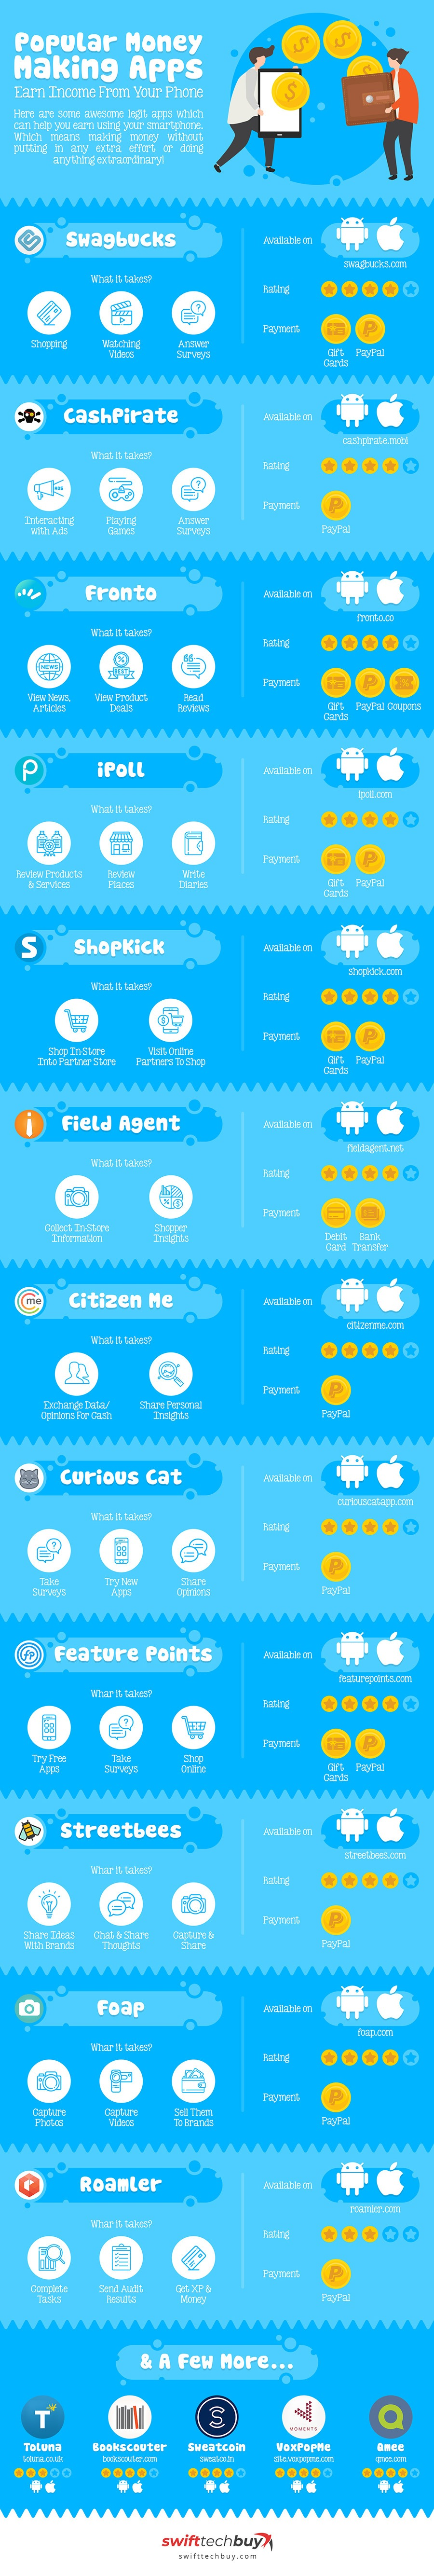 Money-Making Apps - Infographic